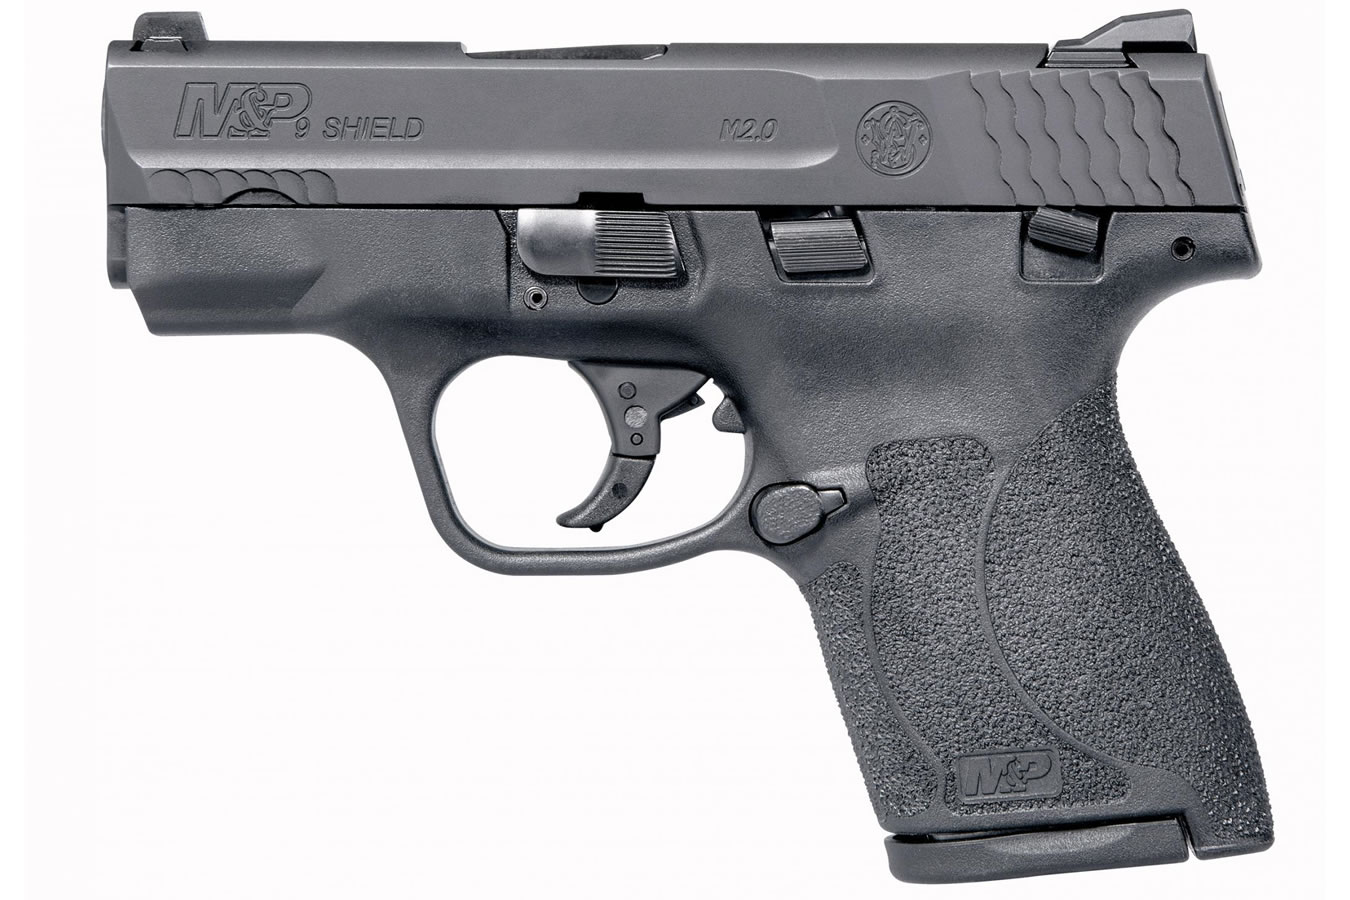 MP9 SHIELD M2.0 9MM W/ THUMB SAFETY (LE)